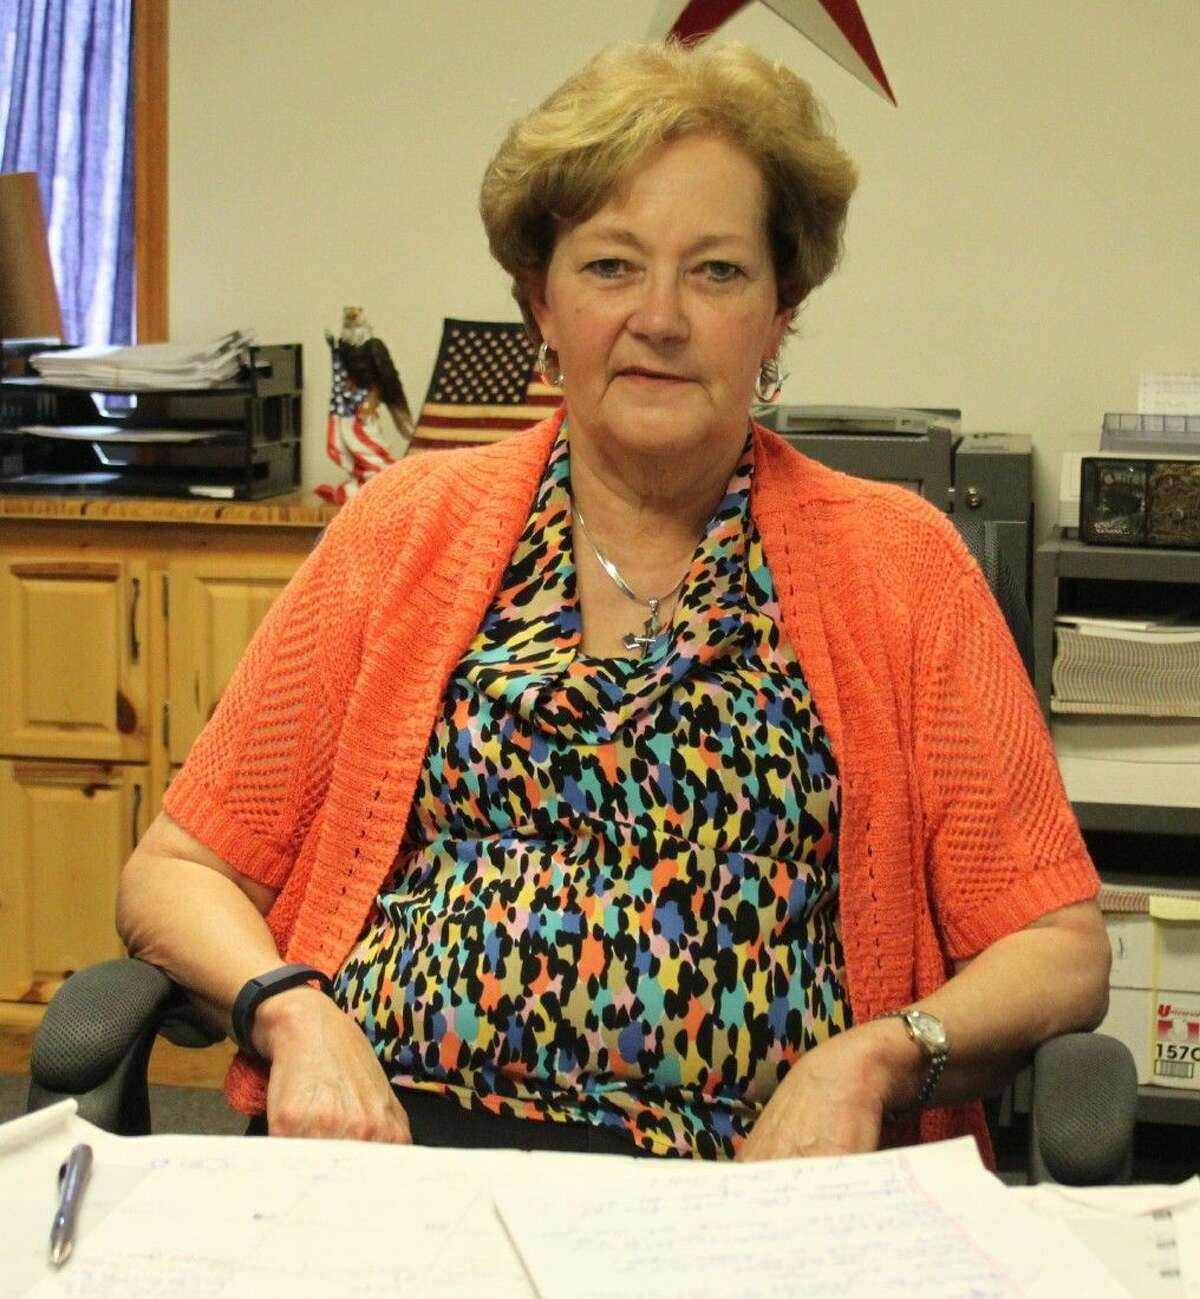 Sherryl Evans is the elections administrator for San Jacinto County. She refuses to quit even in the face of a difficult challenge.